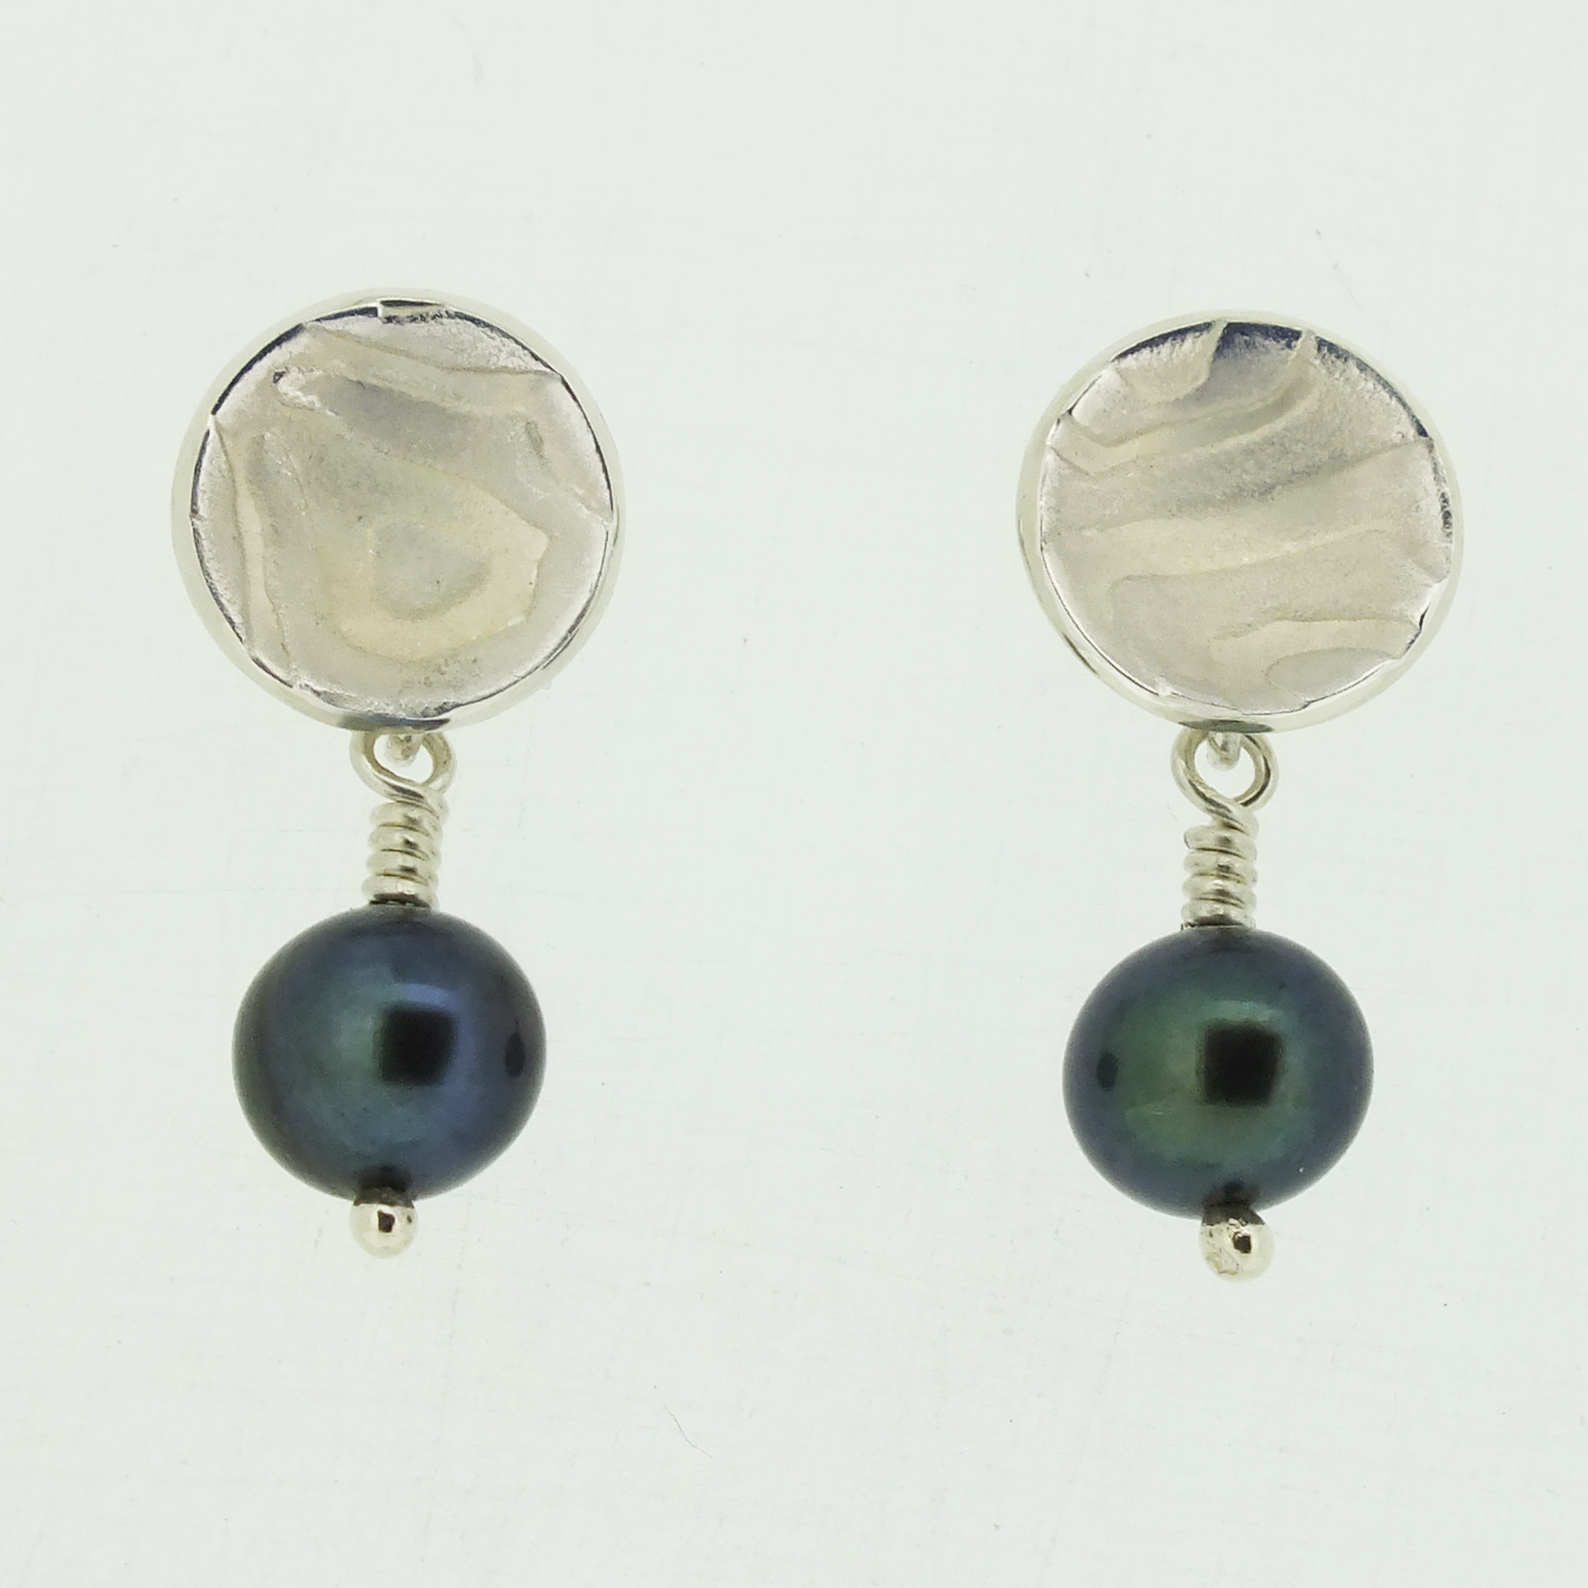 Concave cup textured silver stud earrings with black pearl drop